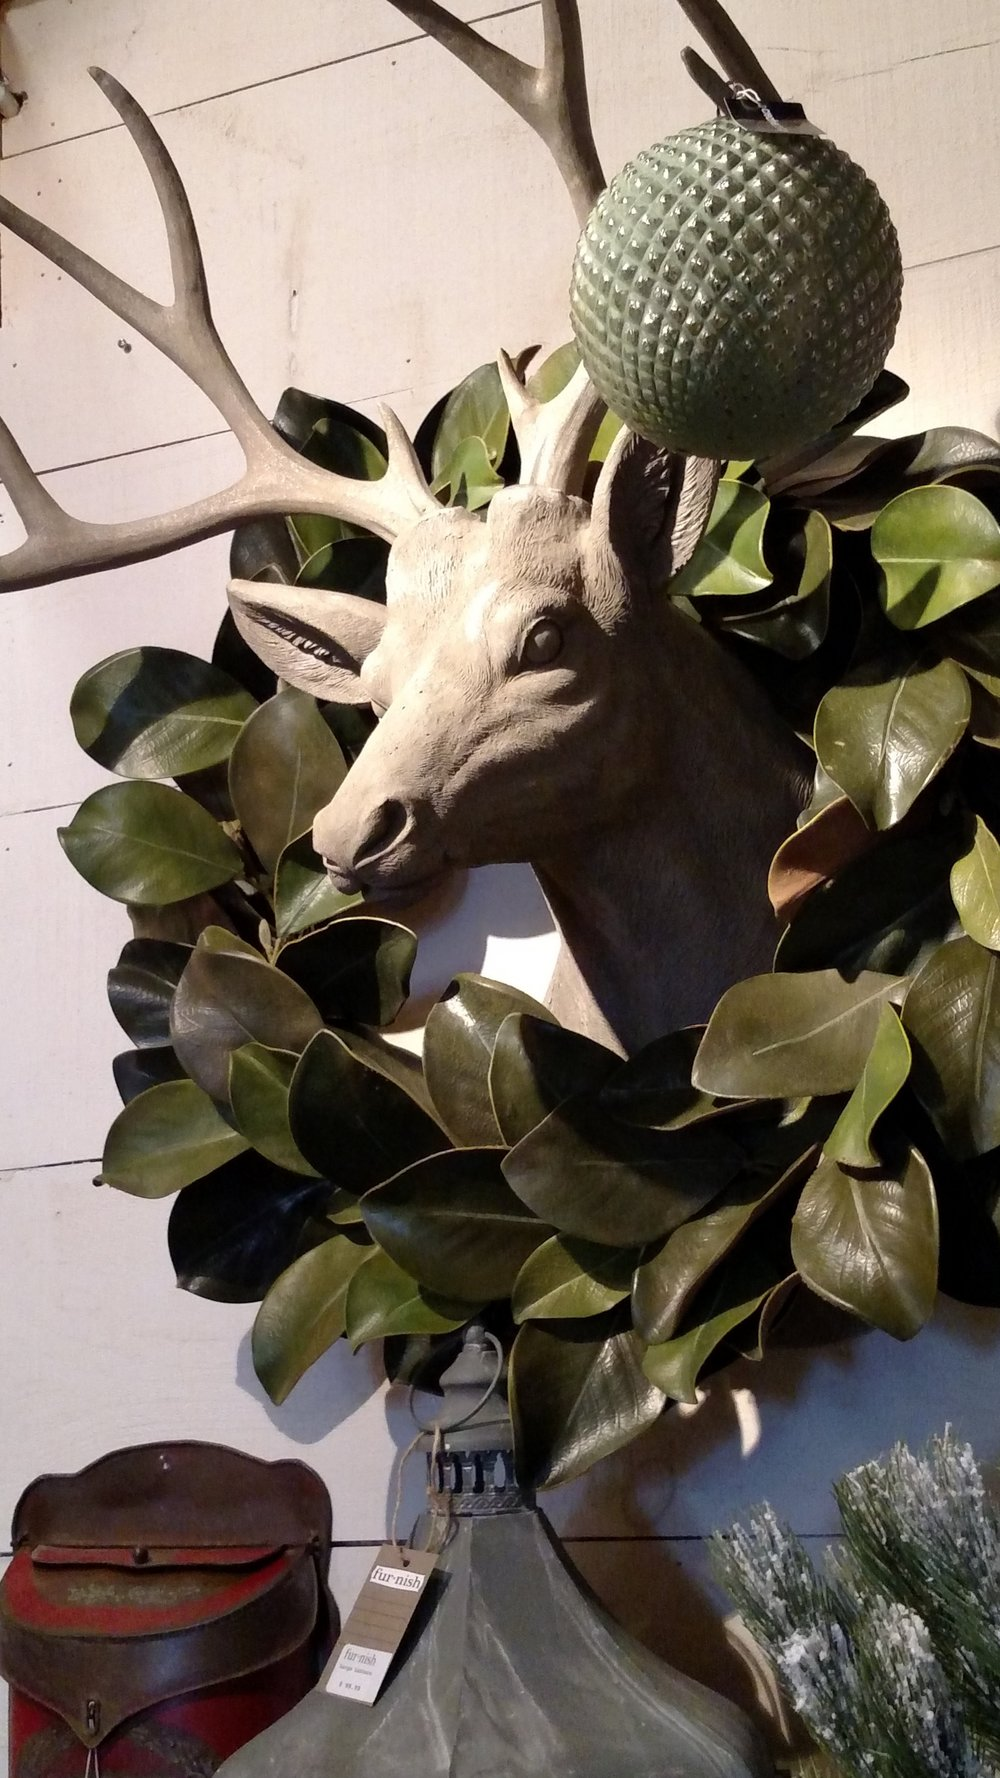 Faux Trophy Mount surrounded by a Magnolia Leaf Wreath